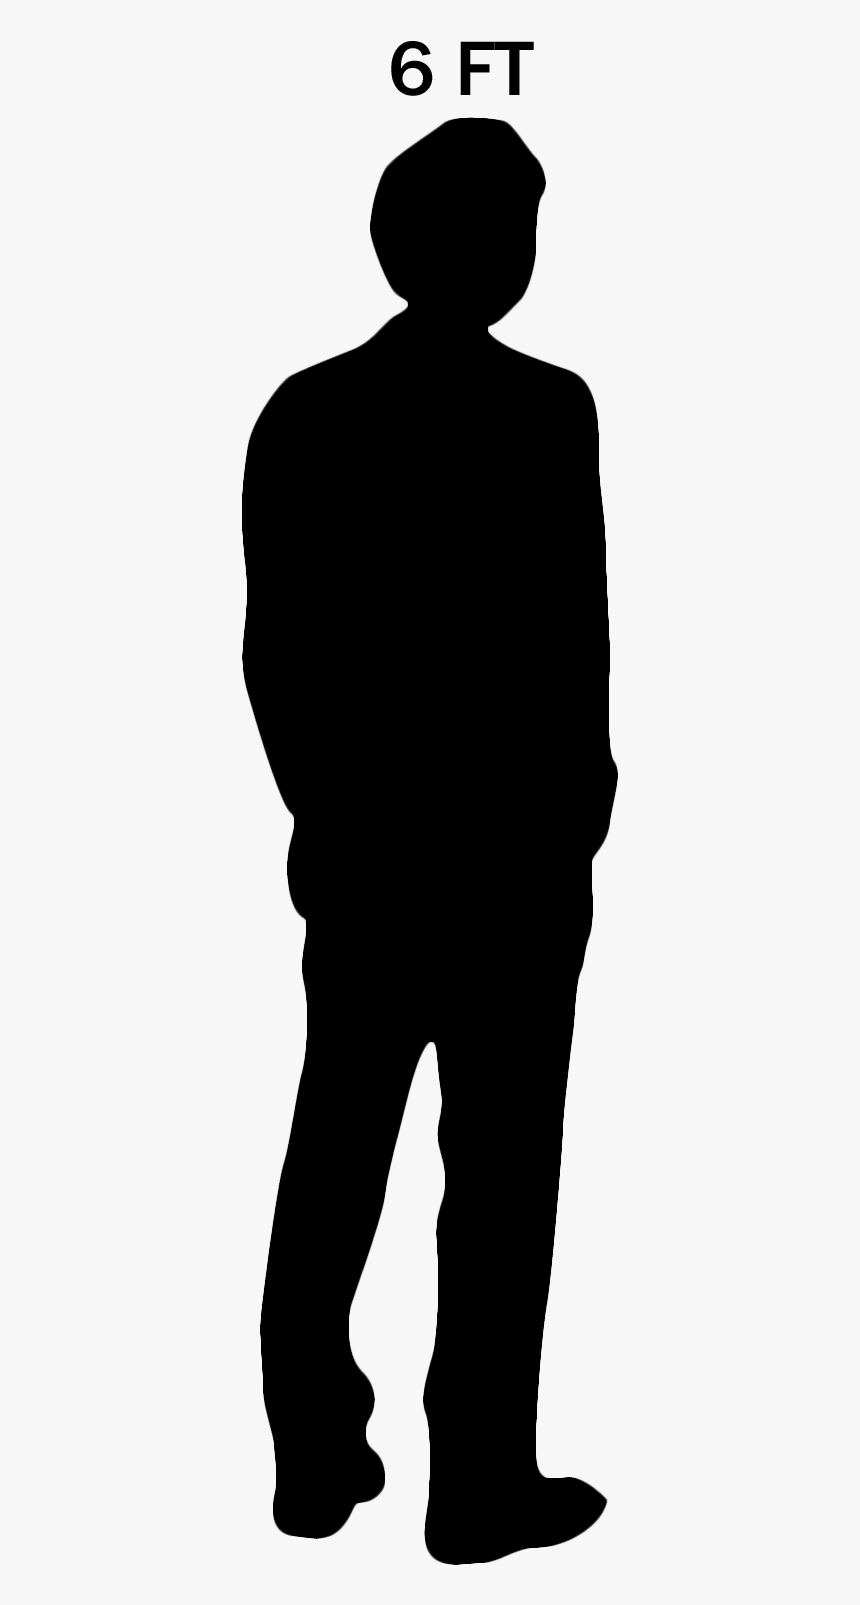 Scale Figure Png Human Silhouette Png Architecture Transparent Png Transparent Png Image Pngitem The best selection of royalty free human silhouette vector art, graphics and stock illustrations. scale figure png human silhouette png